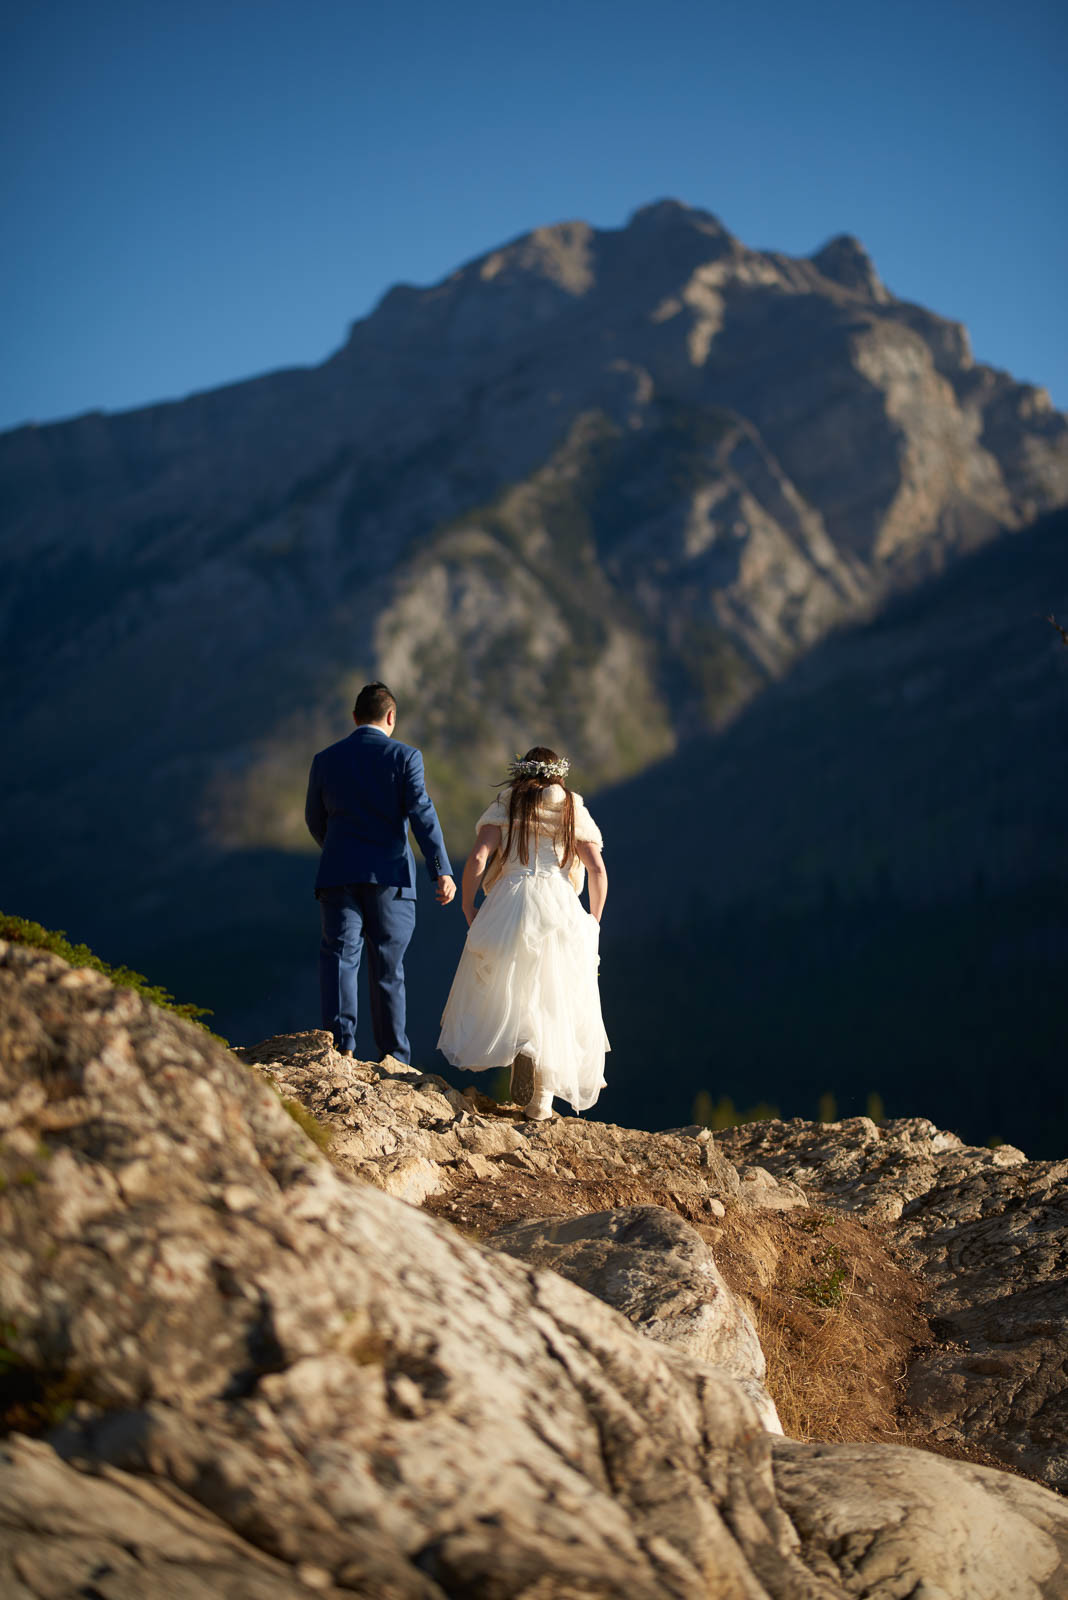 Adventure Wedding, Destination Wedding, Austin Wedding Photographers, Banff Mountains, Alberta Canada, Couple Going on and Adventure